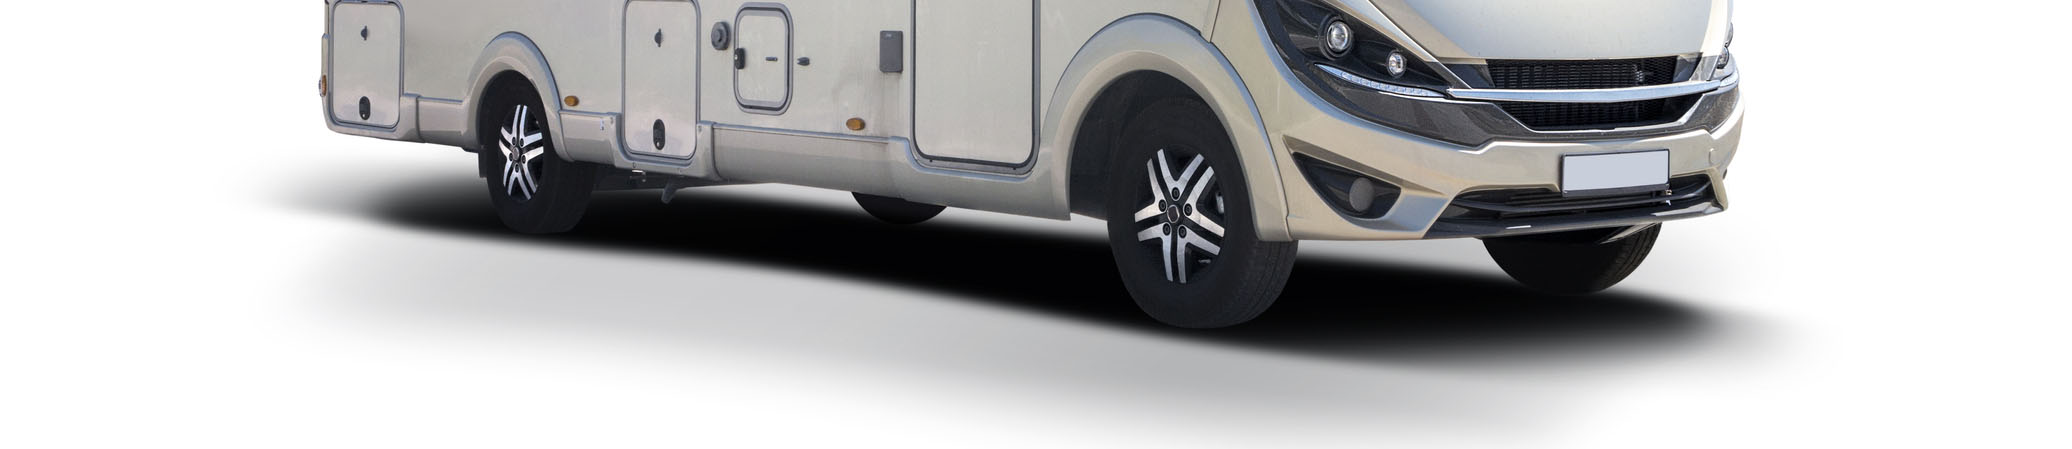 An RV showing its tires.